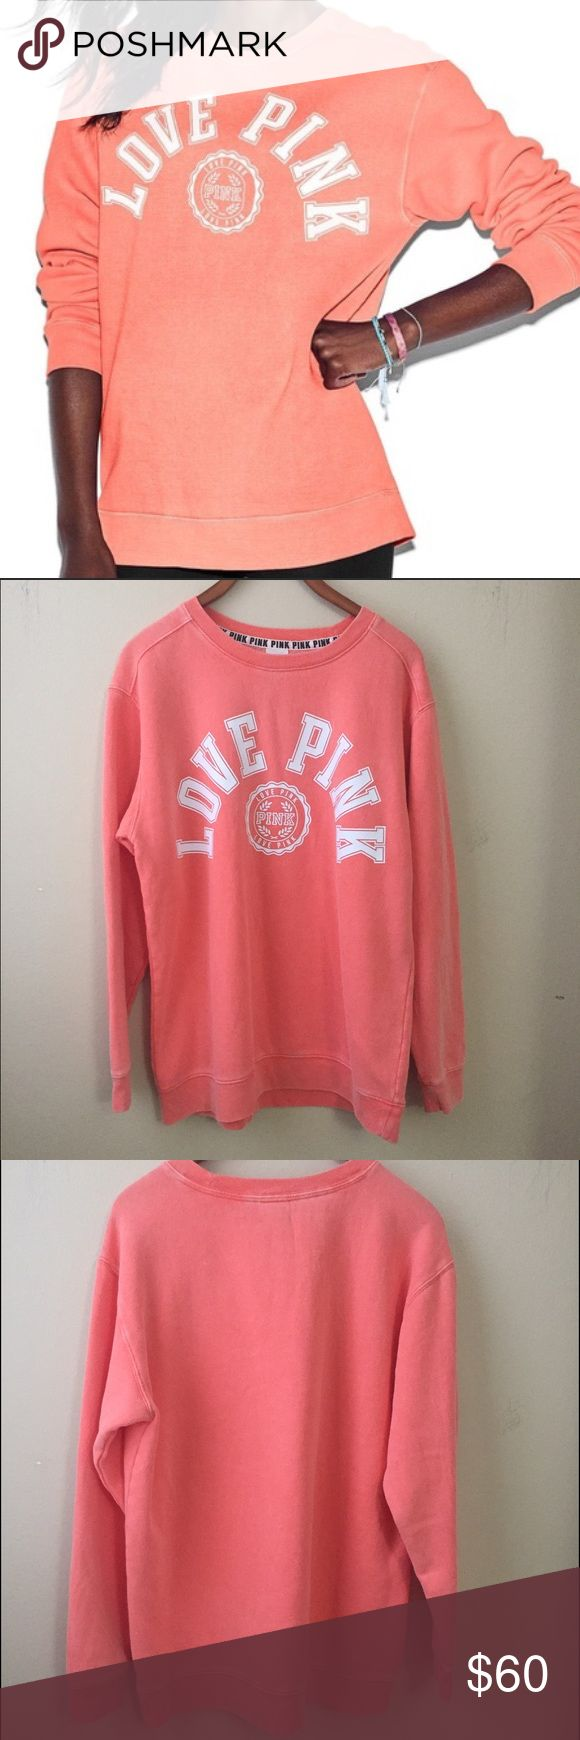 """Victorias Secret PINK Perfect Crew Sweatshirt Authentic new with tag, never worn or tried on. The color is a faded orange/salmon. It has a worn look. White """"Love Pink"""" logo. Women's Size Medium. It is oversized with longer length. First picture if for illustration purposes only. Note that I do my best to show the actual color but due to different screens or lightning conditions the color that you see may be a variant of it. Smoke Free and Pet Free Environment. ❗️No Trade❗️ PINK Victoria's…"""